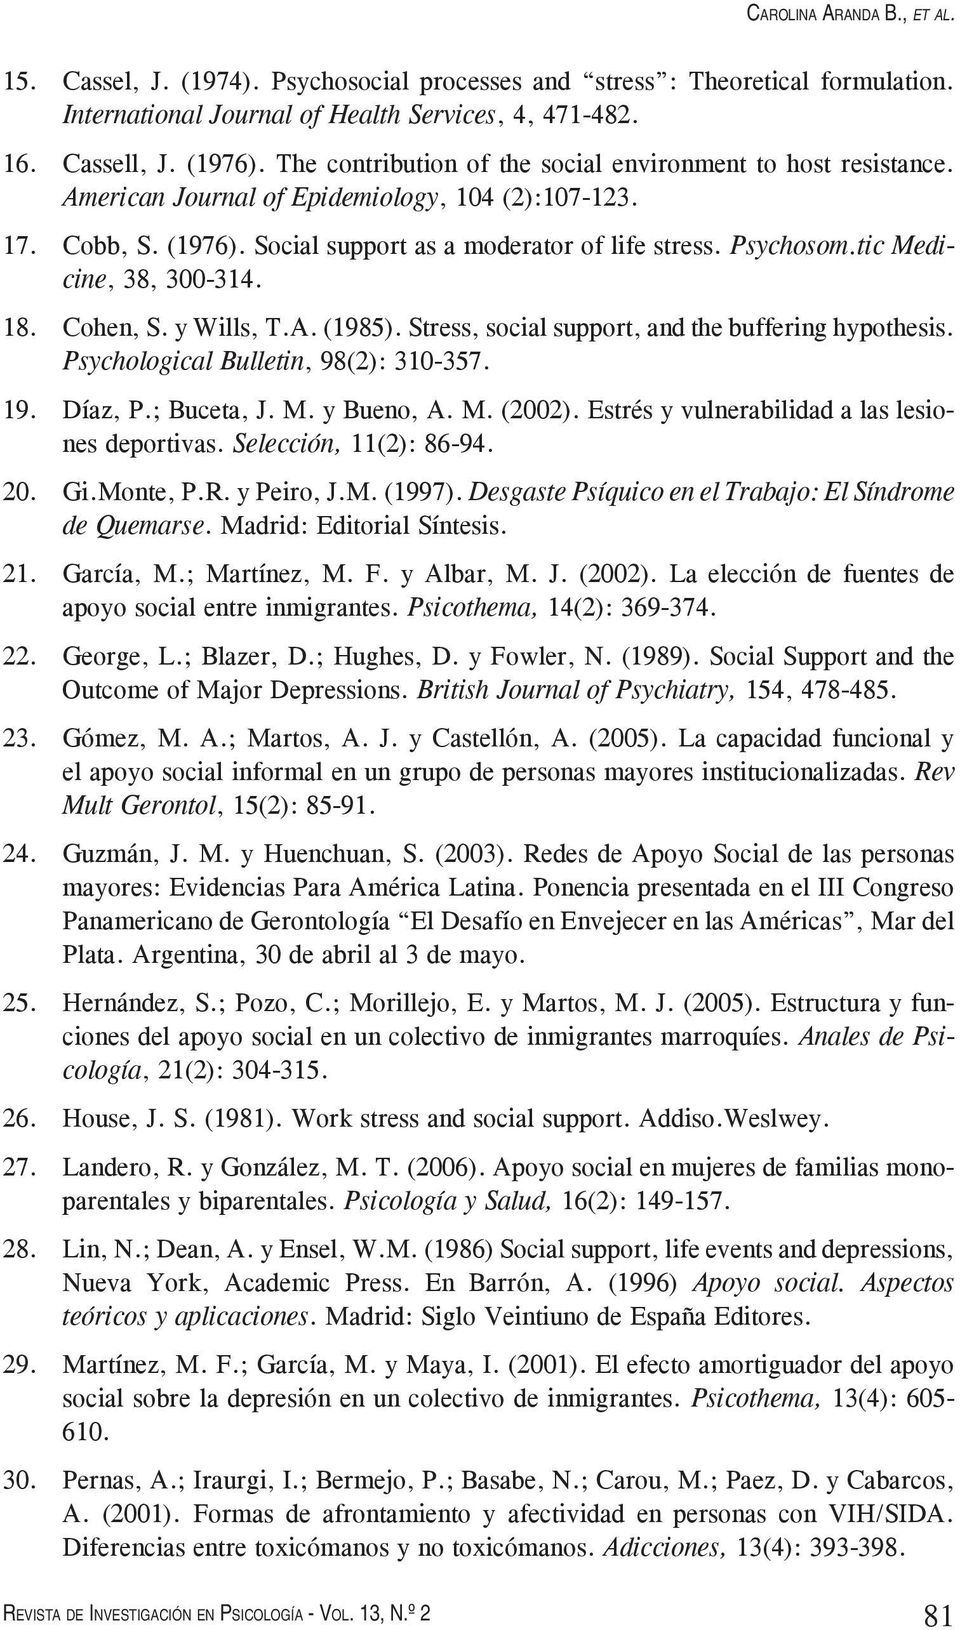 tic Medicine, 38, 300-314. 18. Cohen, S. y Wills, T.A. (1985). Stress, social support, and the buffering hypothesis. Psychological Bulletin, 98(2): 310-357. 19. Díaz, P.; Buceta, J. M. y Bueno, A. M. (2002).